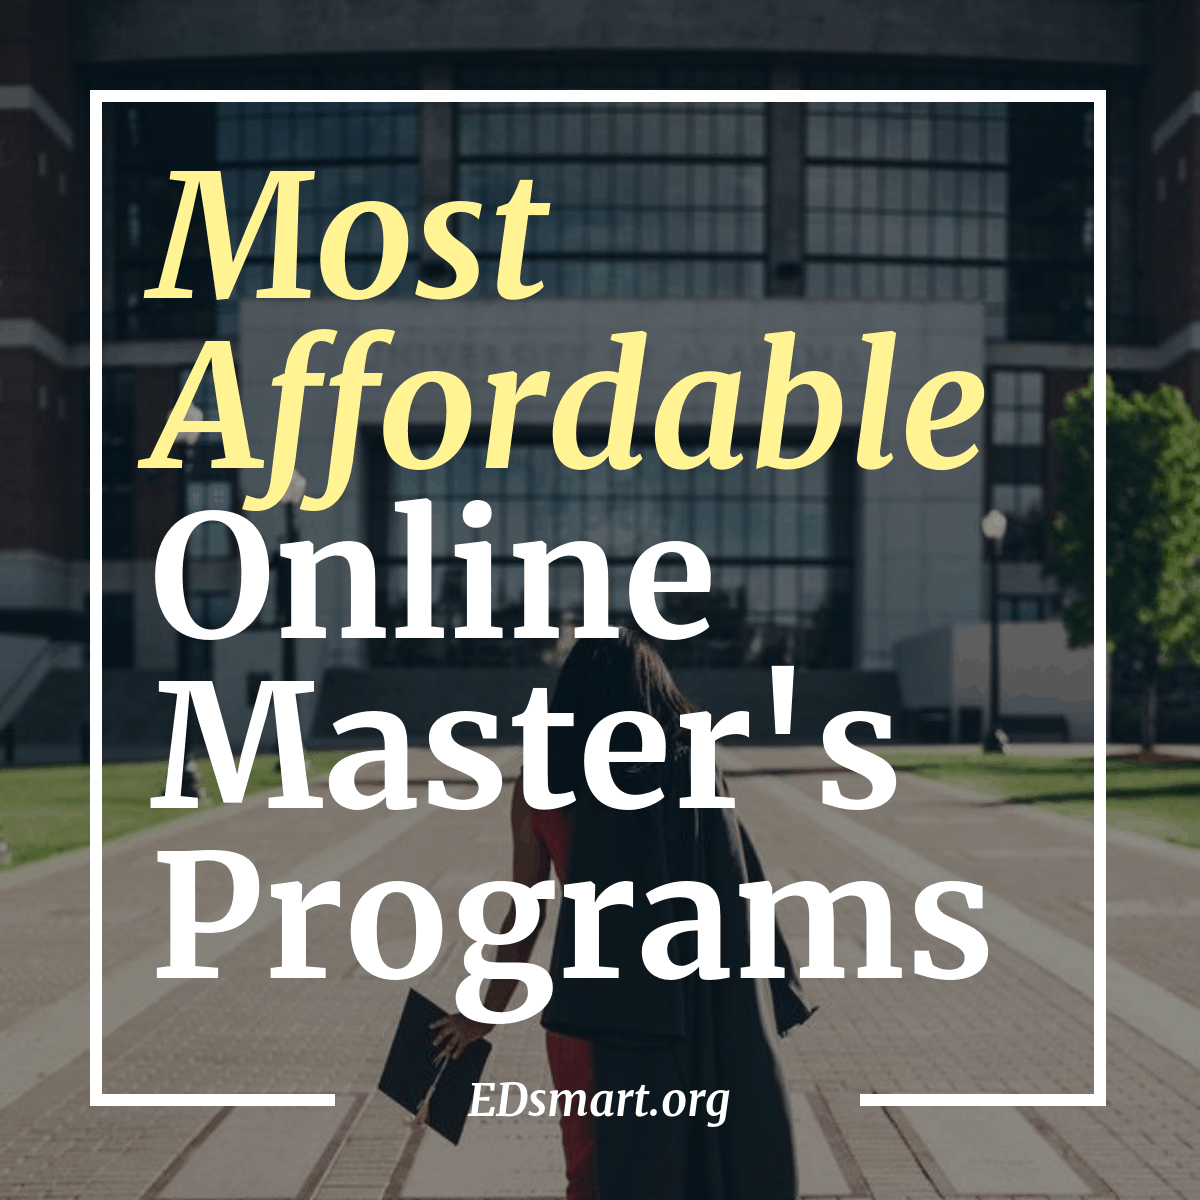 2021 Most Affordable Online Master's Programs Ranking Announced by EDsmart 6